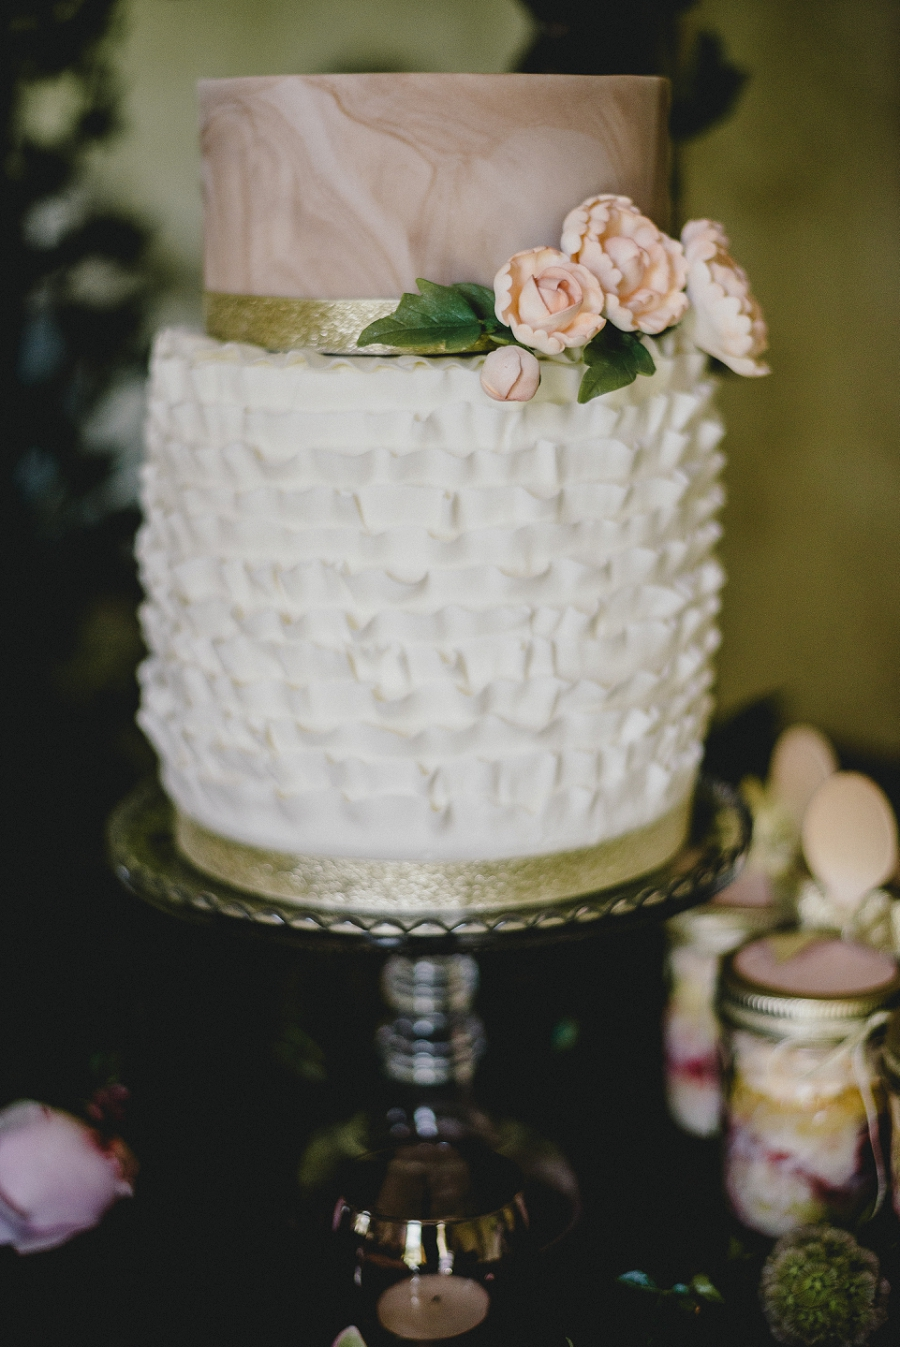 Heirloom wedding inspiration with Emily Andrews Events at Thurning Hall. Photo credit Benjamin Mathers Photography (8)